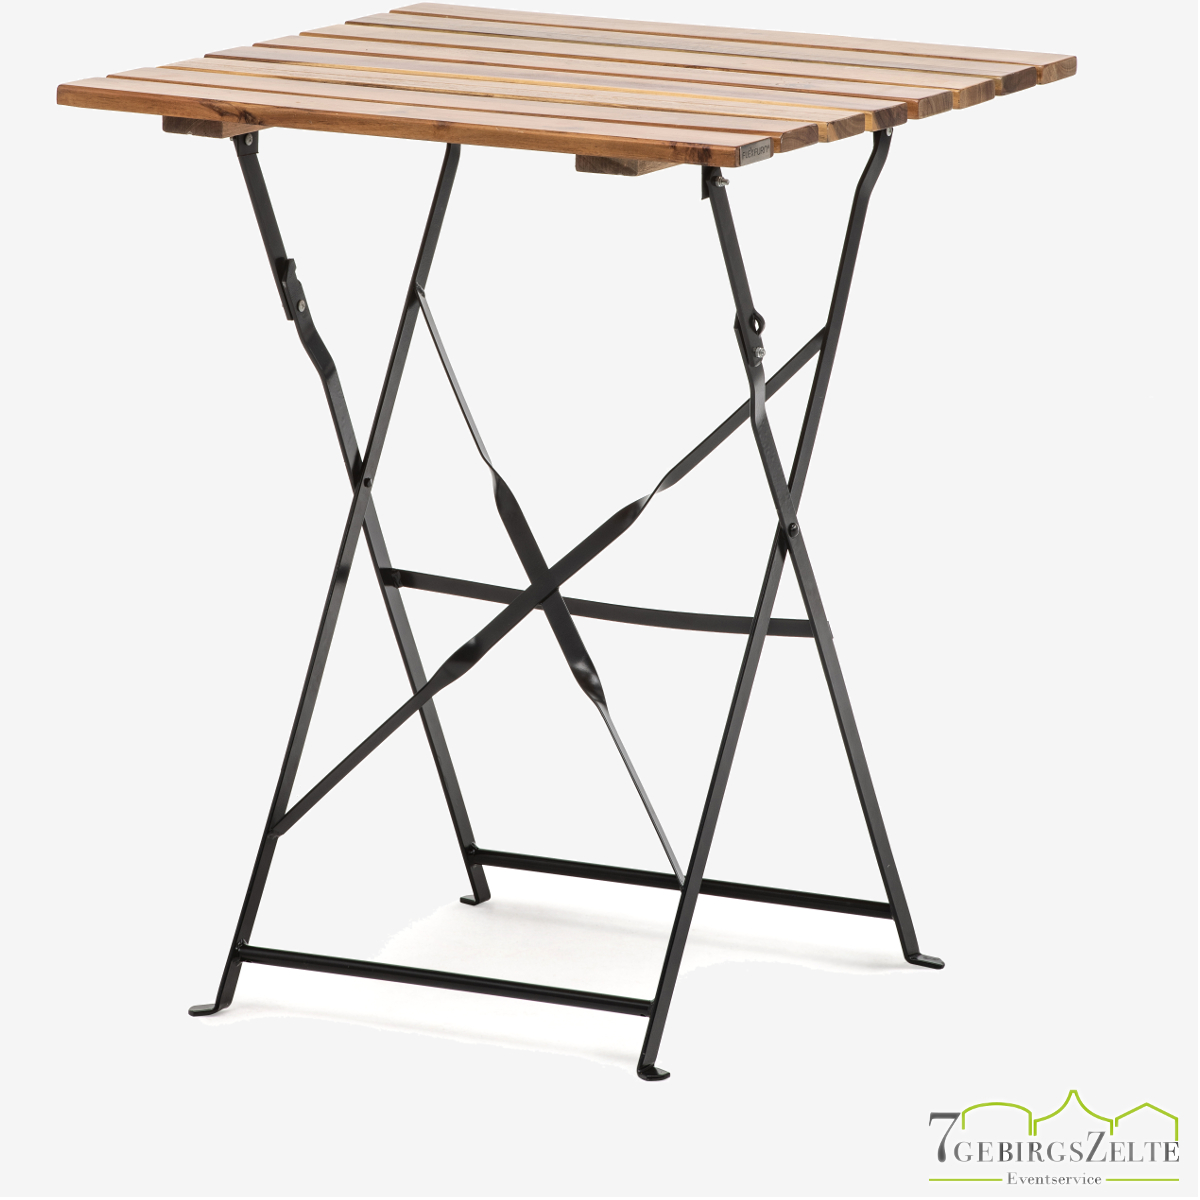 Bistro table steel and natural wood - acacia wood